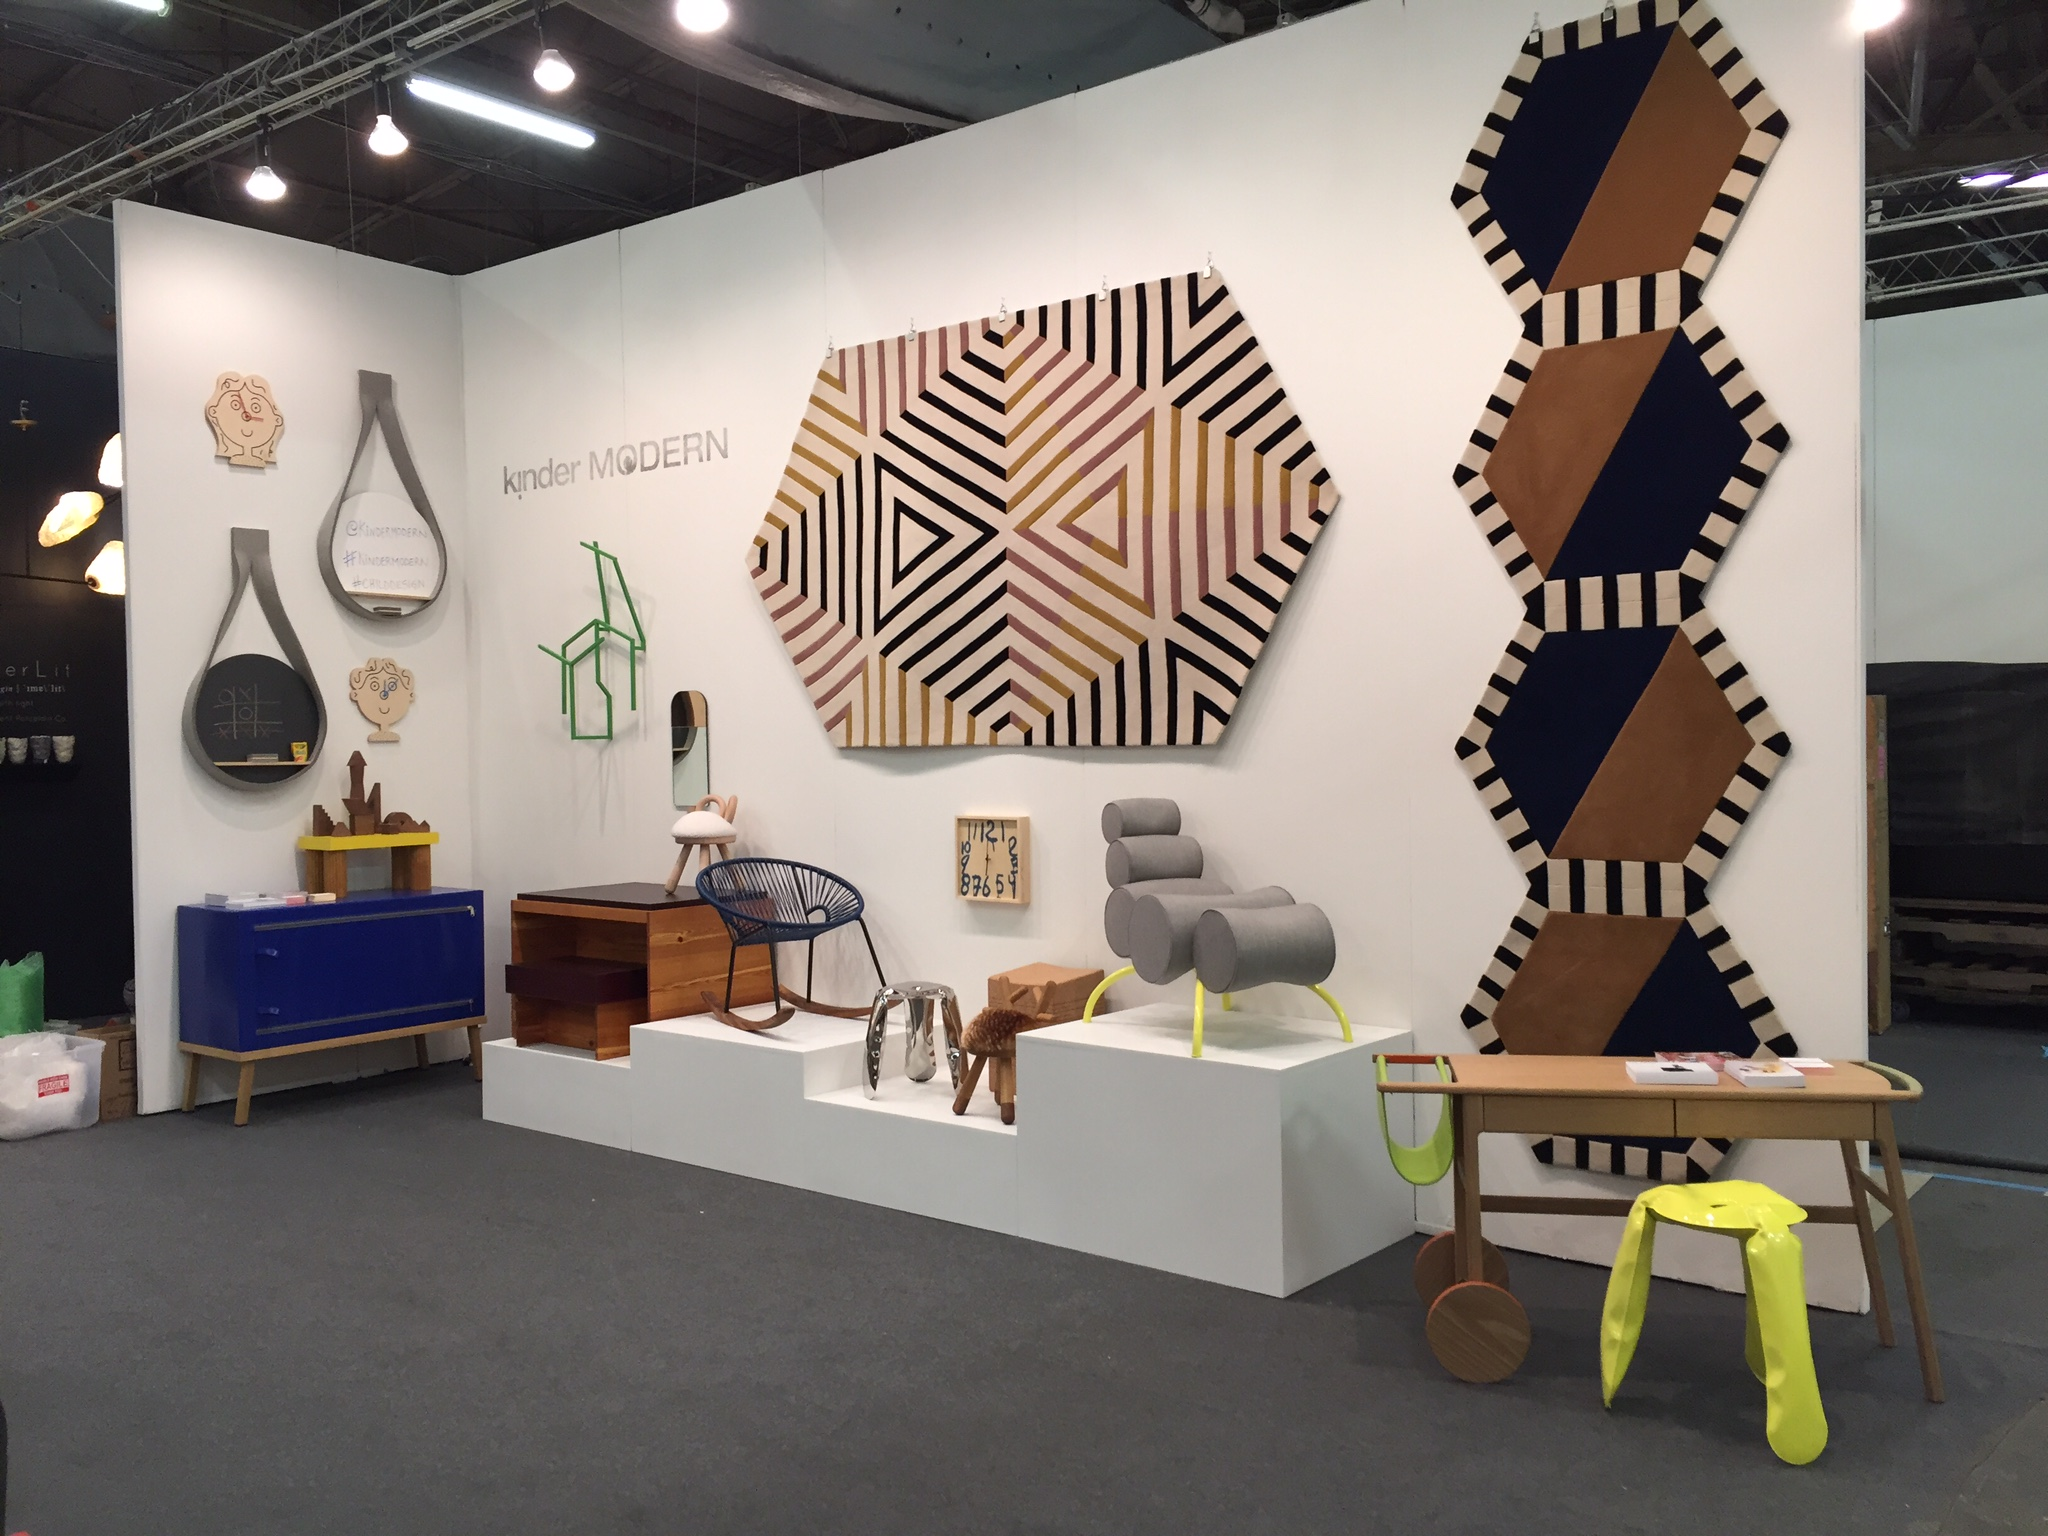 Kinder modern at the architectural digest design show - Cuisine moderne images architectural digest ...